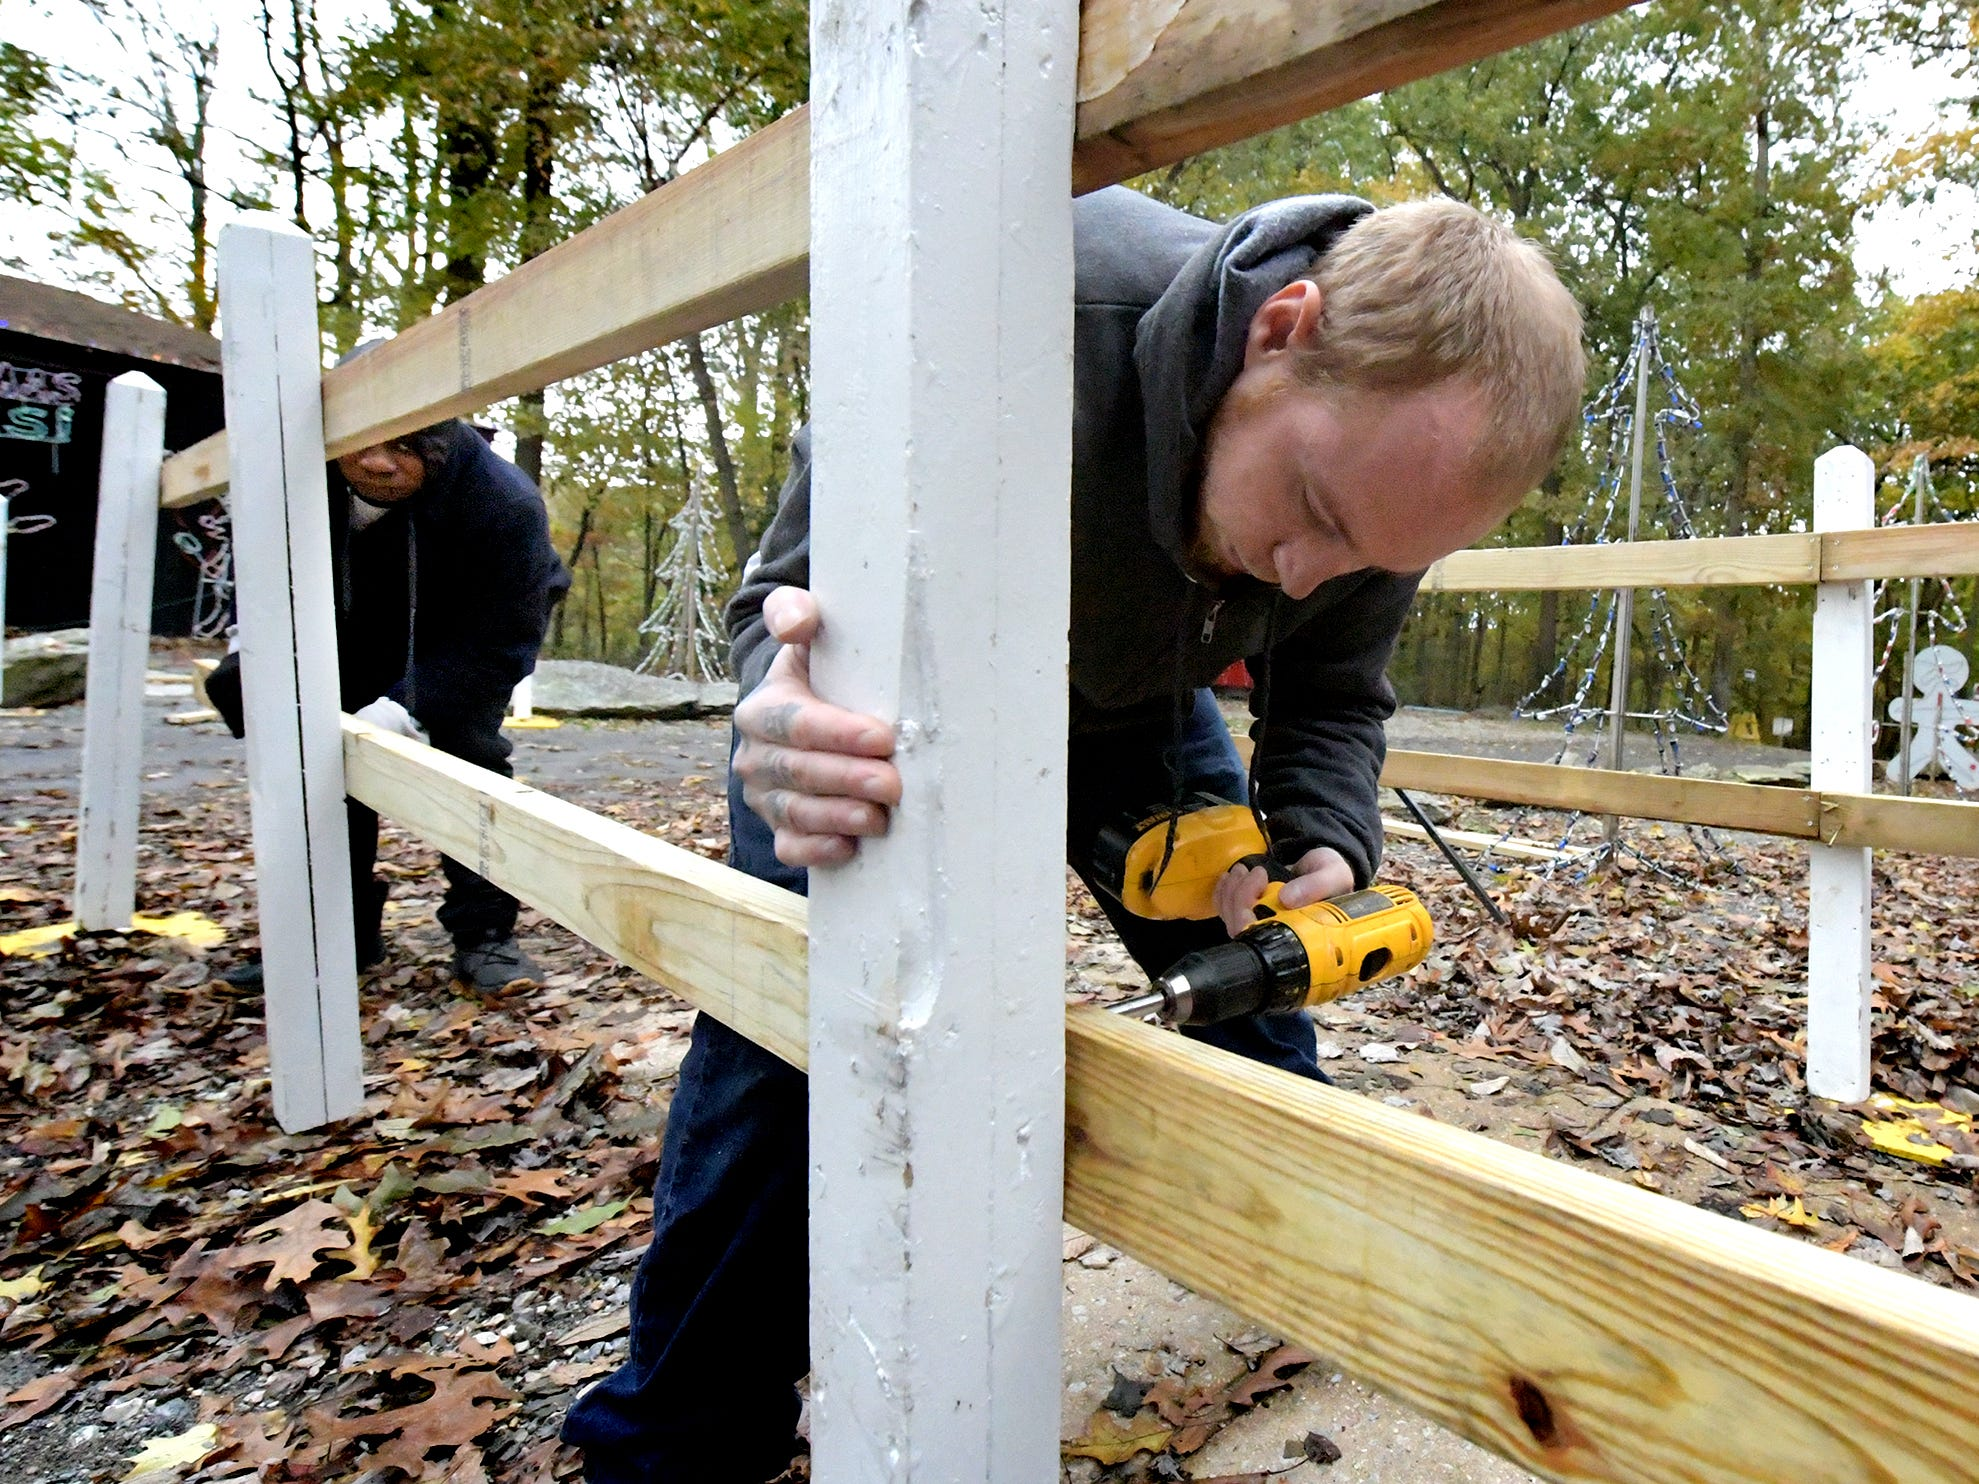 York County work release inmates Cody Miller and Paul Hinton, left, construct a fence at Rocky Ridge Park, Monday, Oct. 29, 2018, while preparing for the Christmas Magic event. The event, featuring 600,000 lights along a half-mile trail, is in its 35th year. Christmas Magic runs daily from Nov. 23 through December 31. It is closed on Dec. 24 and 25. Hours for the event are Monday through Thursday, 6-9 p.m.; and Friday through Sunday, 5-9 p.m. Tickets will available online starting in early November, according to the department's website. Friday, Saturday and Sunday require pre-purchased ticket sales. Bill Kalina photo